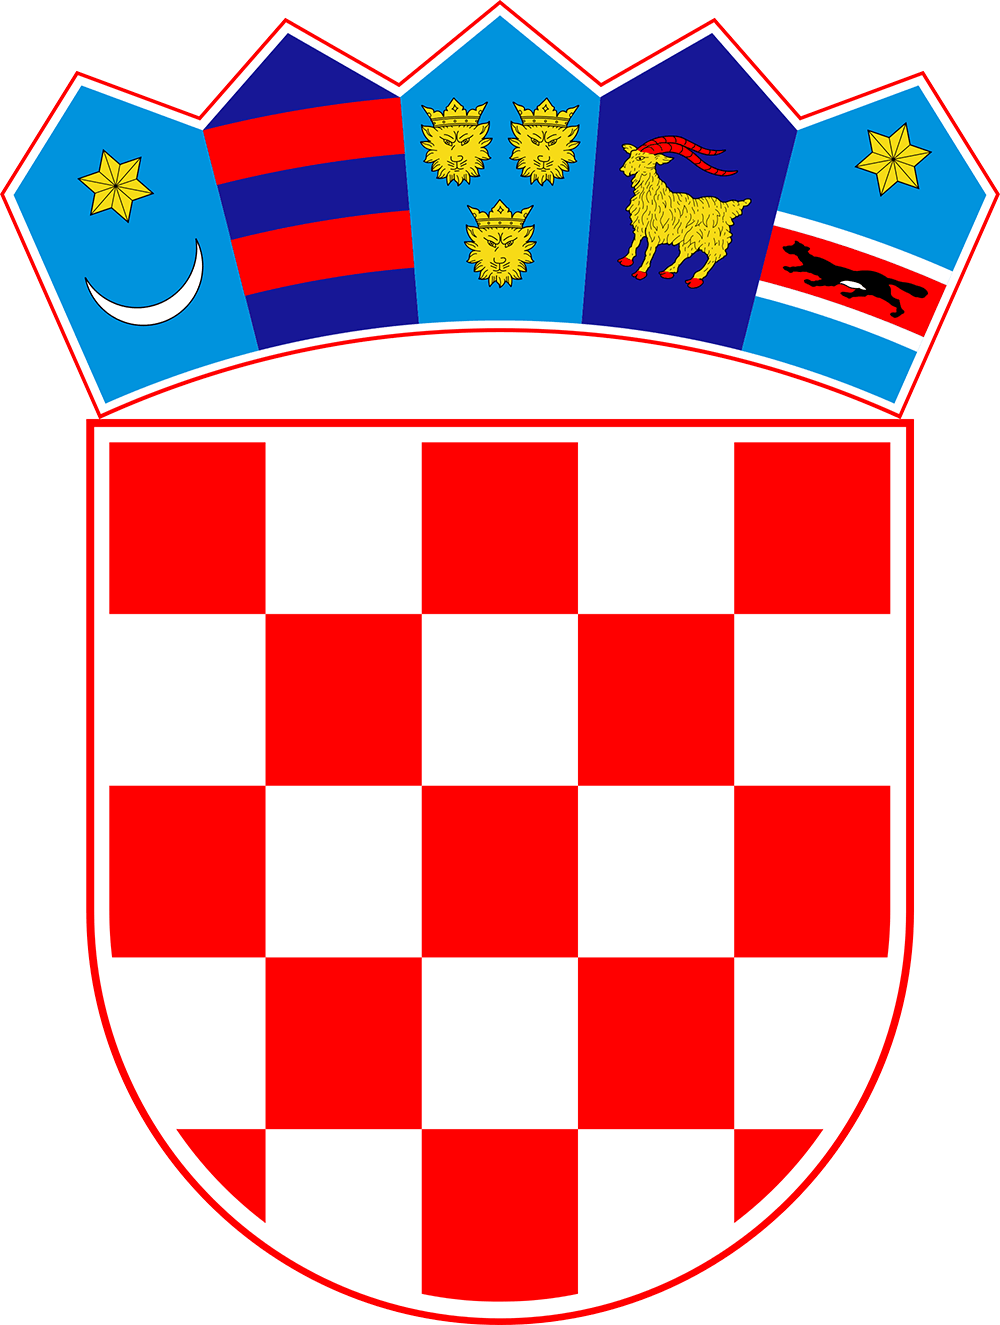 Free Croatia Flag Images: AI, EPS, GIF, , PDF, PNG, and SVG